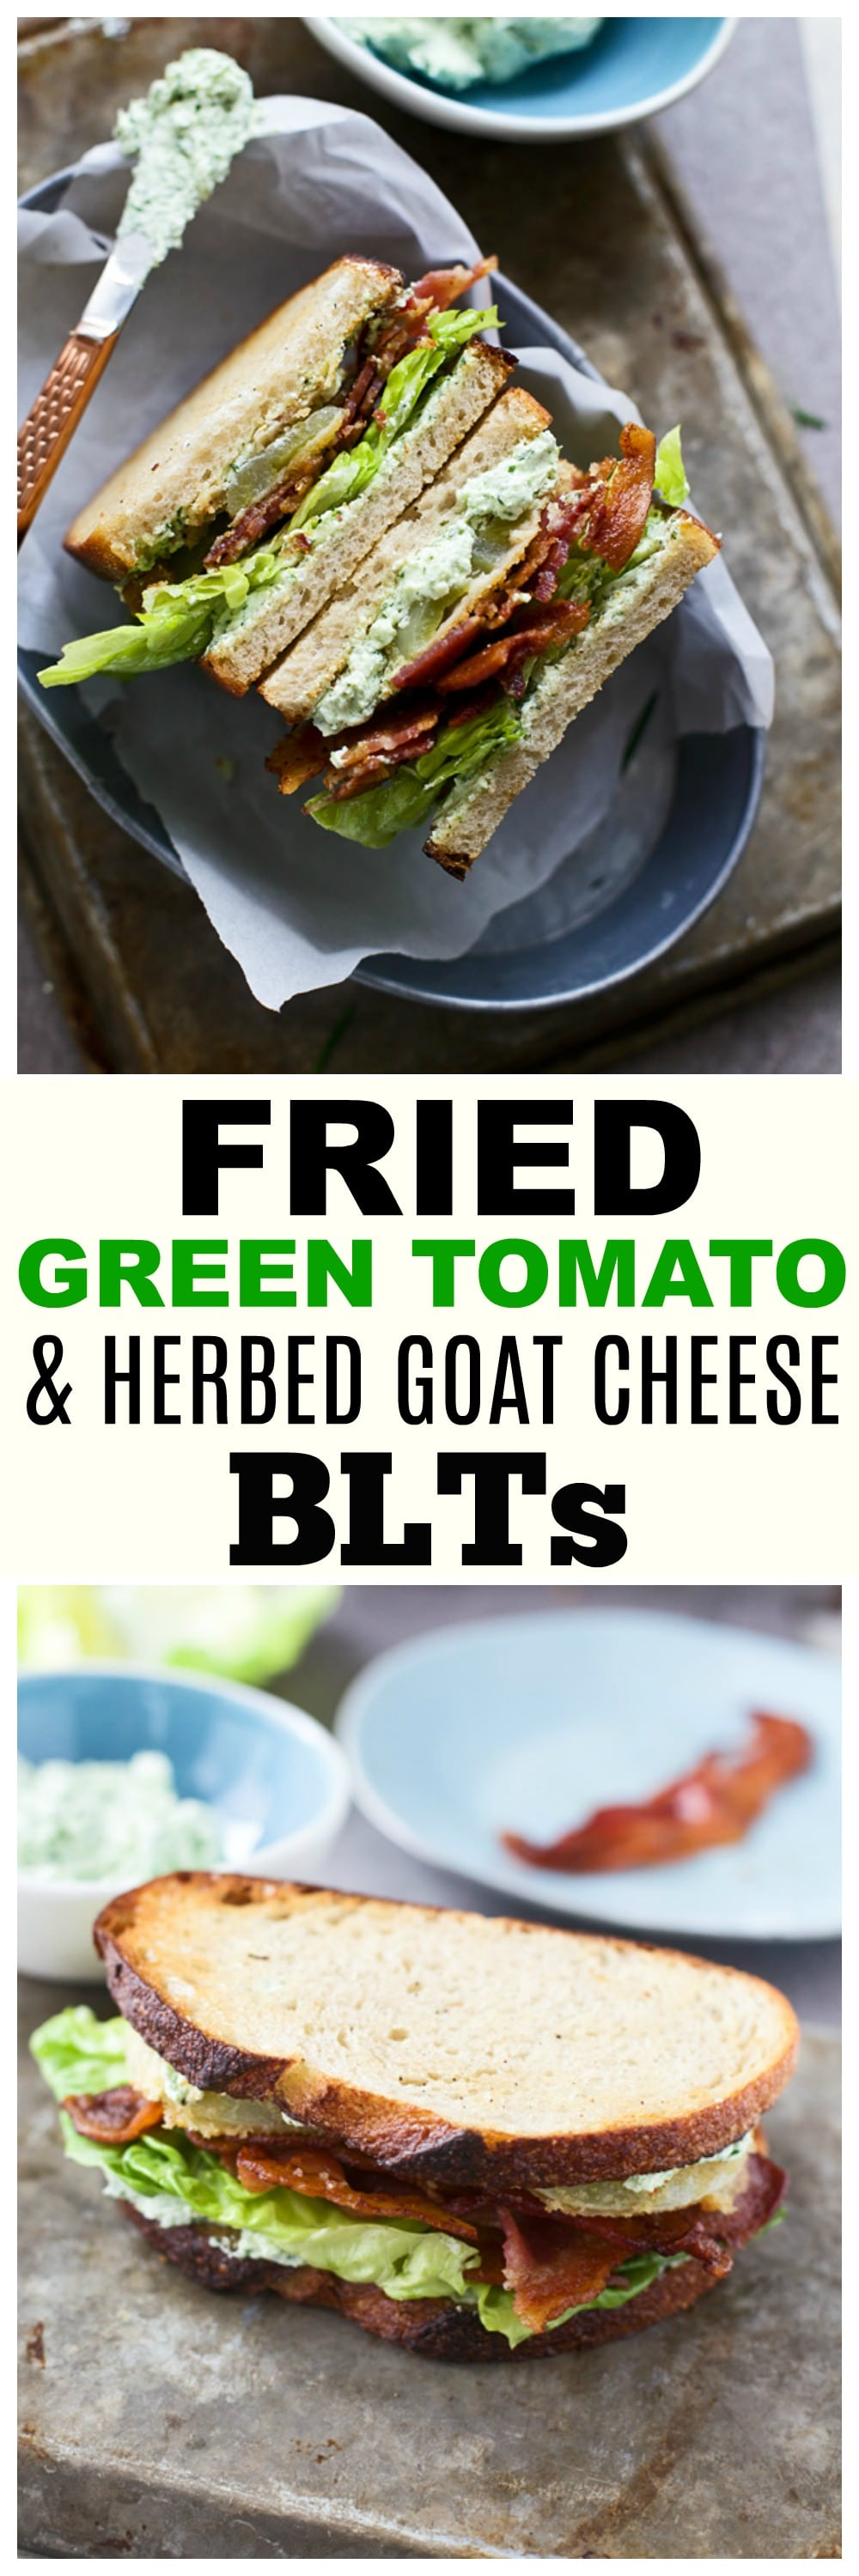 Fried Green Tomato & Goat Cheese BLT Sandwiches